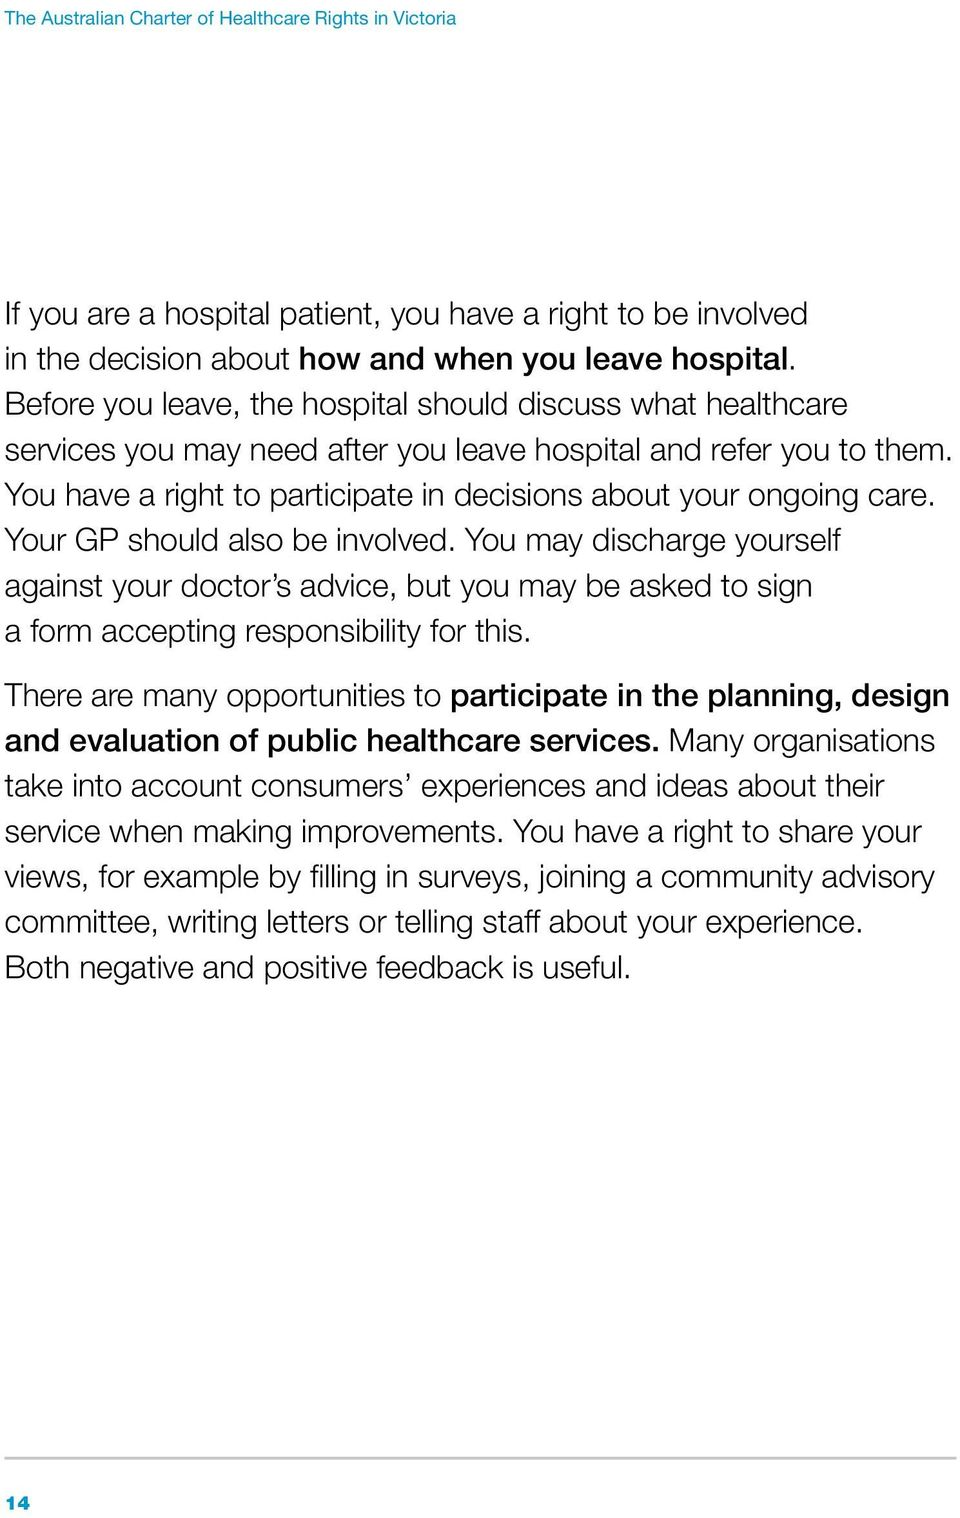 You have a right to participate in decisions about your ongoing care. Your GP should also be involved.